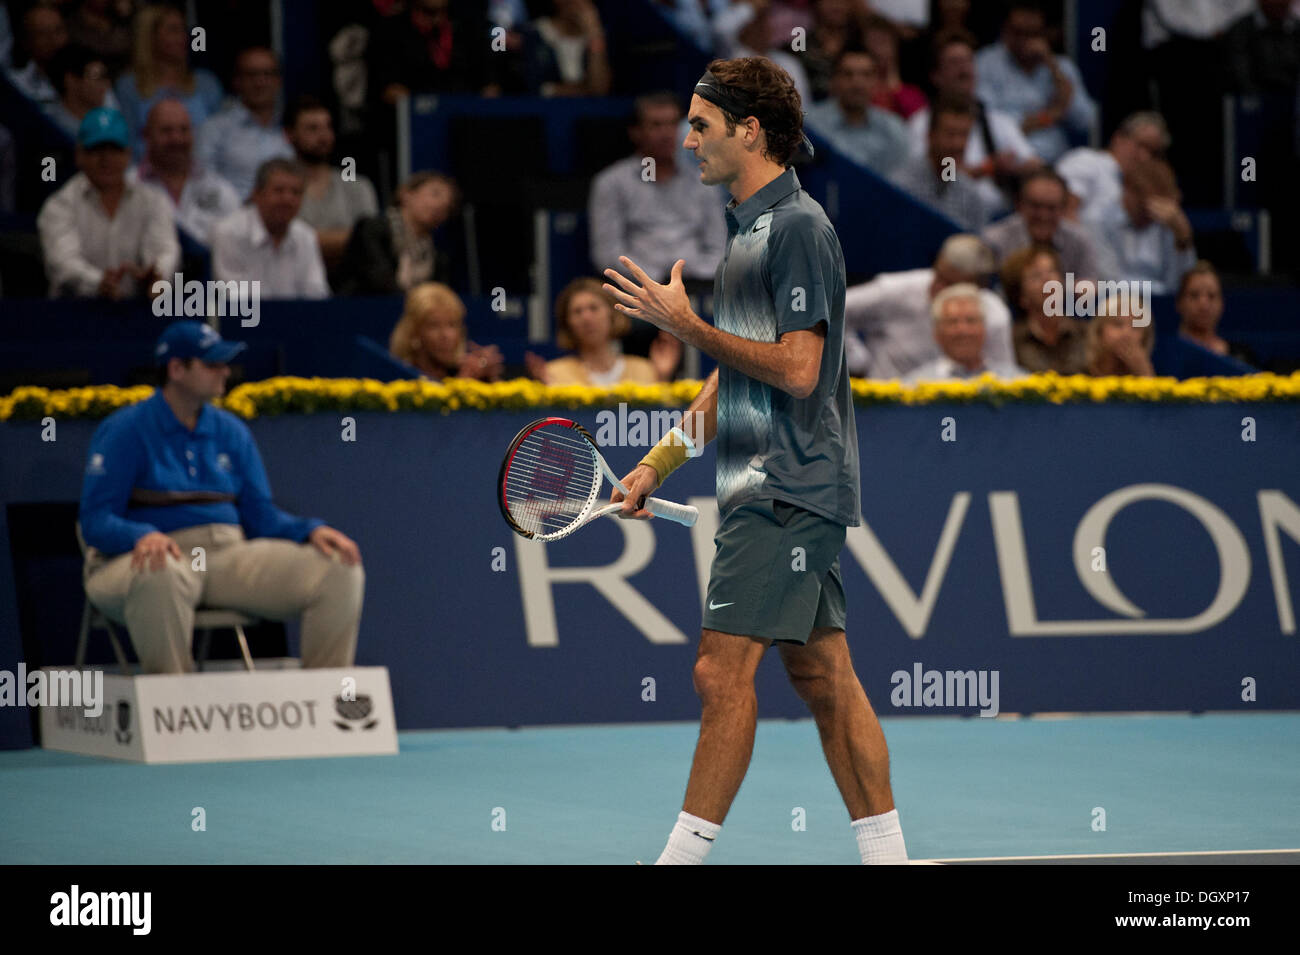 Basel, Switzerland. 27th Oct, 2013. Roger Federer (SUI) angry during the final of the Swiss Indoors at St. Jakobshalle on Sunday. Photo: Miroslav Dakov/ Alamy Live News - Stock Image